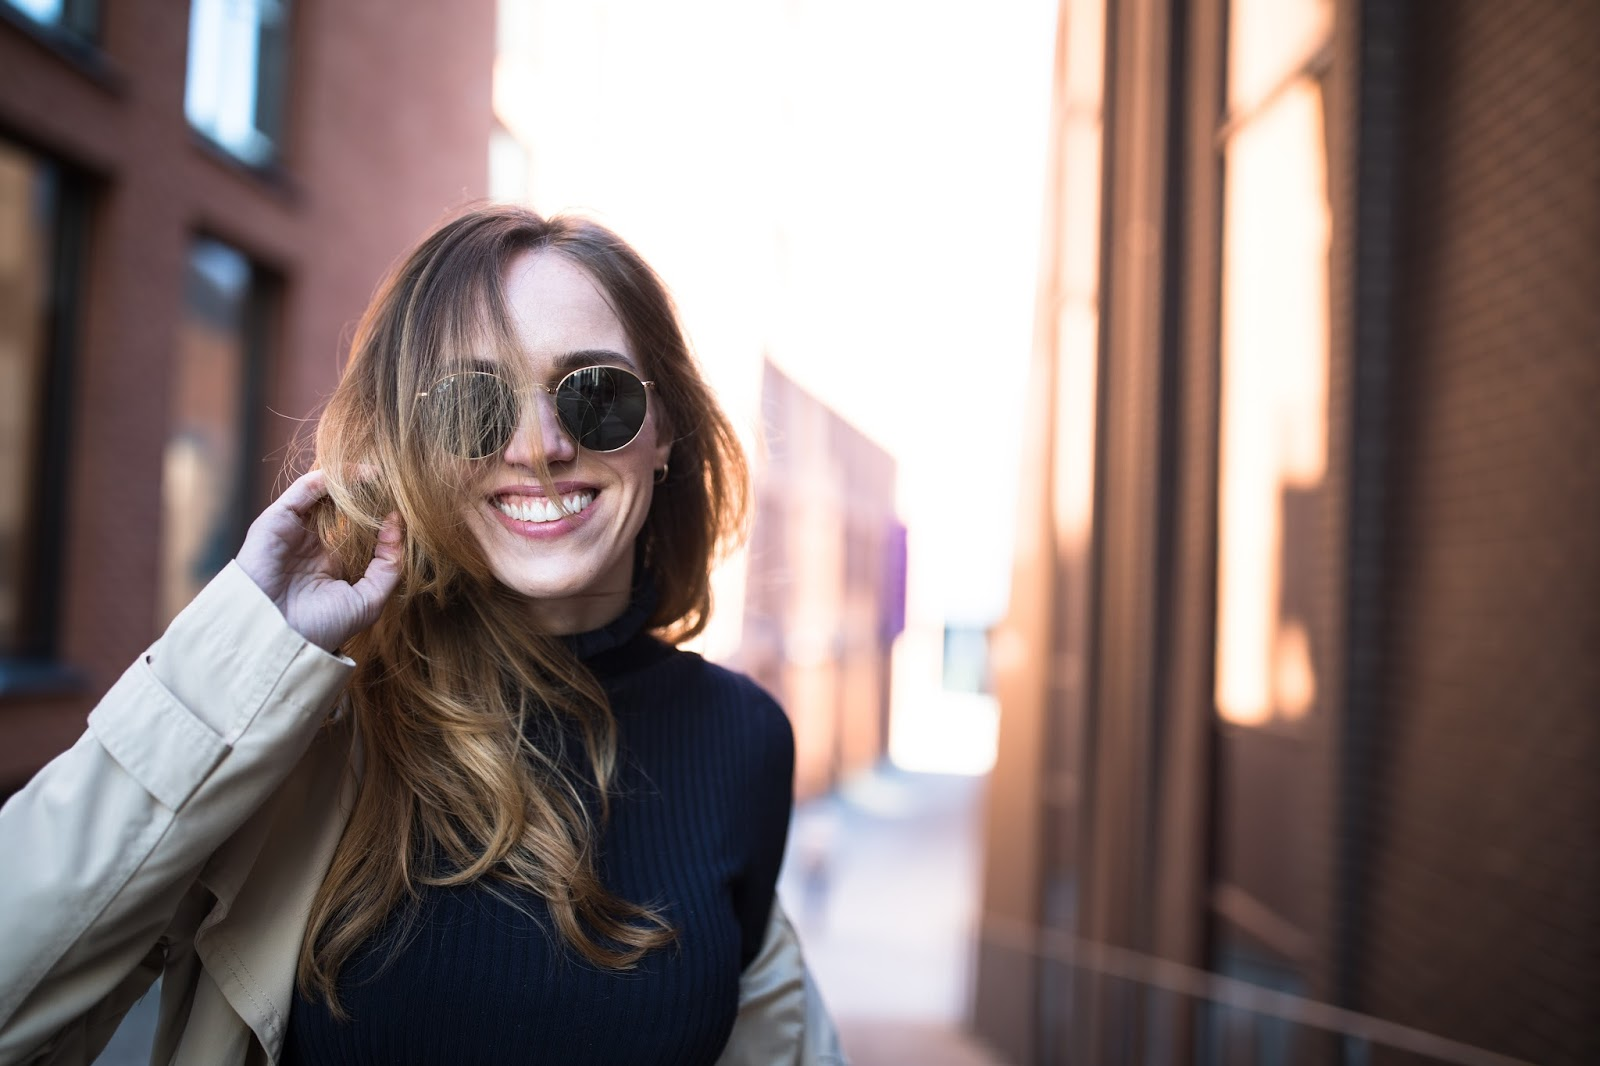 rayban round sunglasses outfit